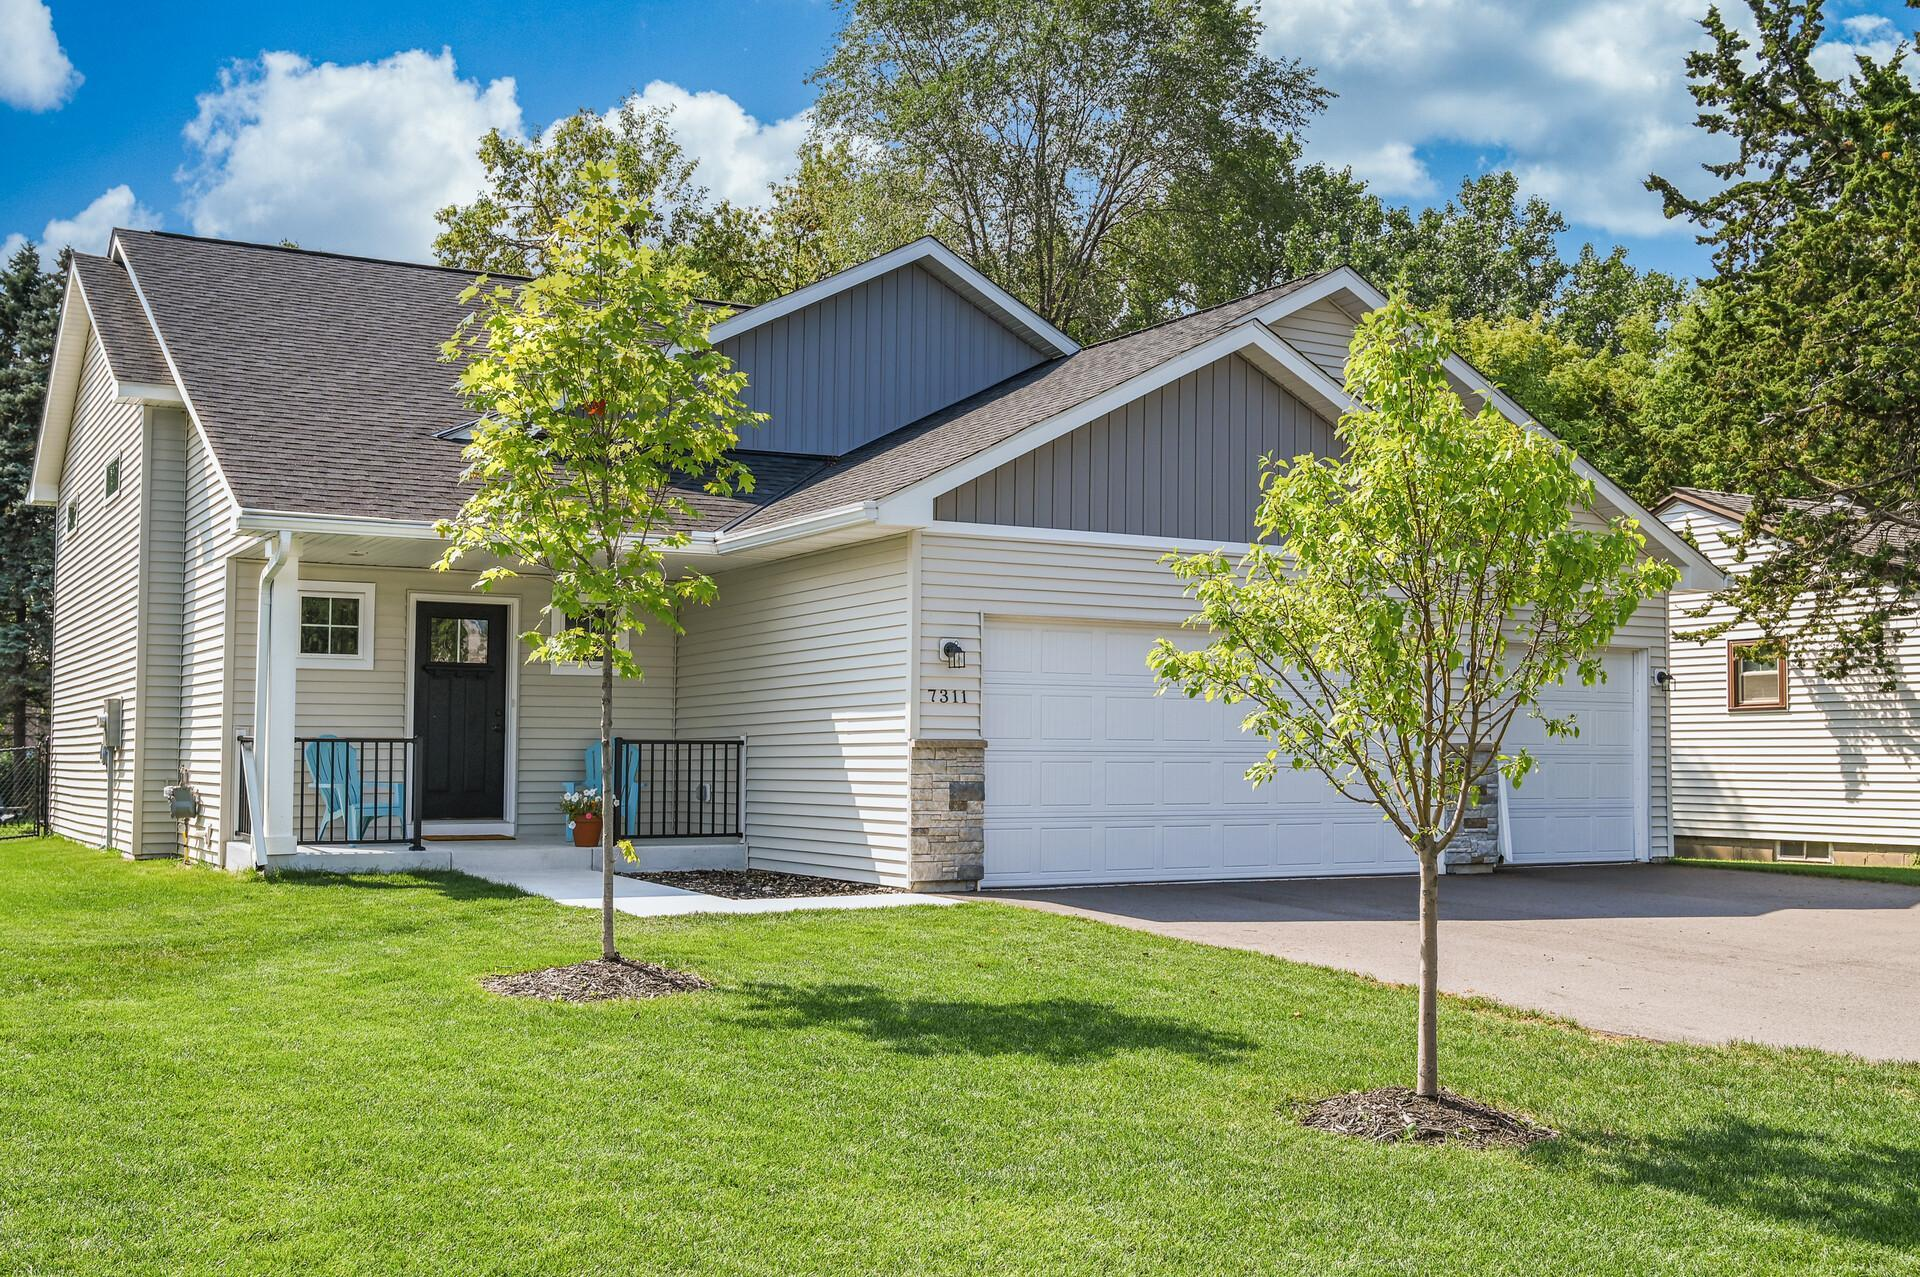 7311 62nd Avenue N Property Photo - New Hope, MN real estate listing